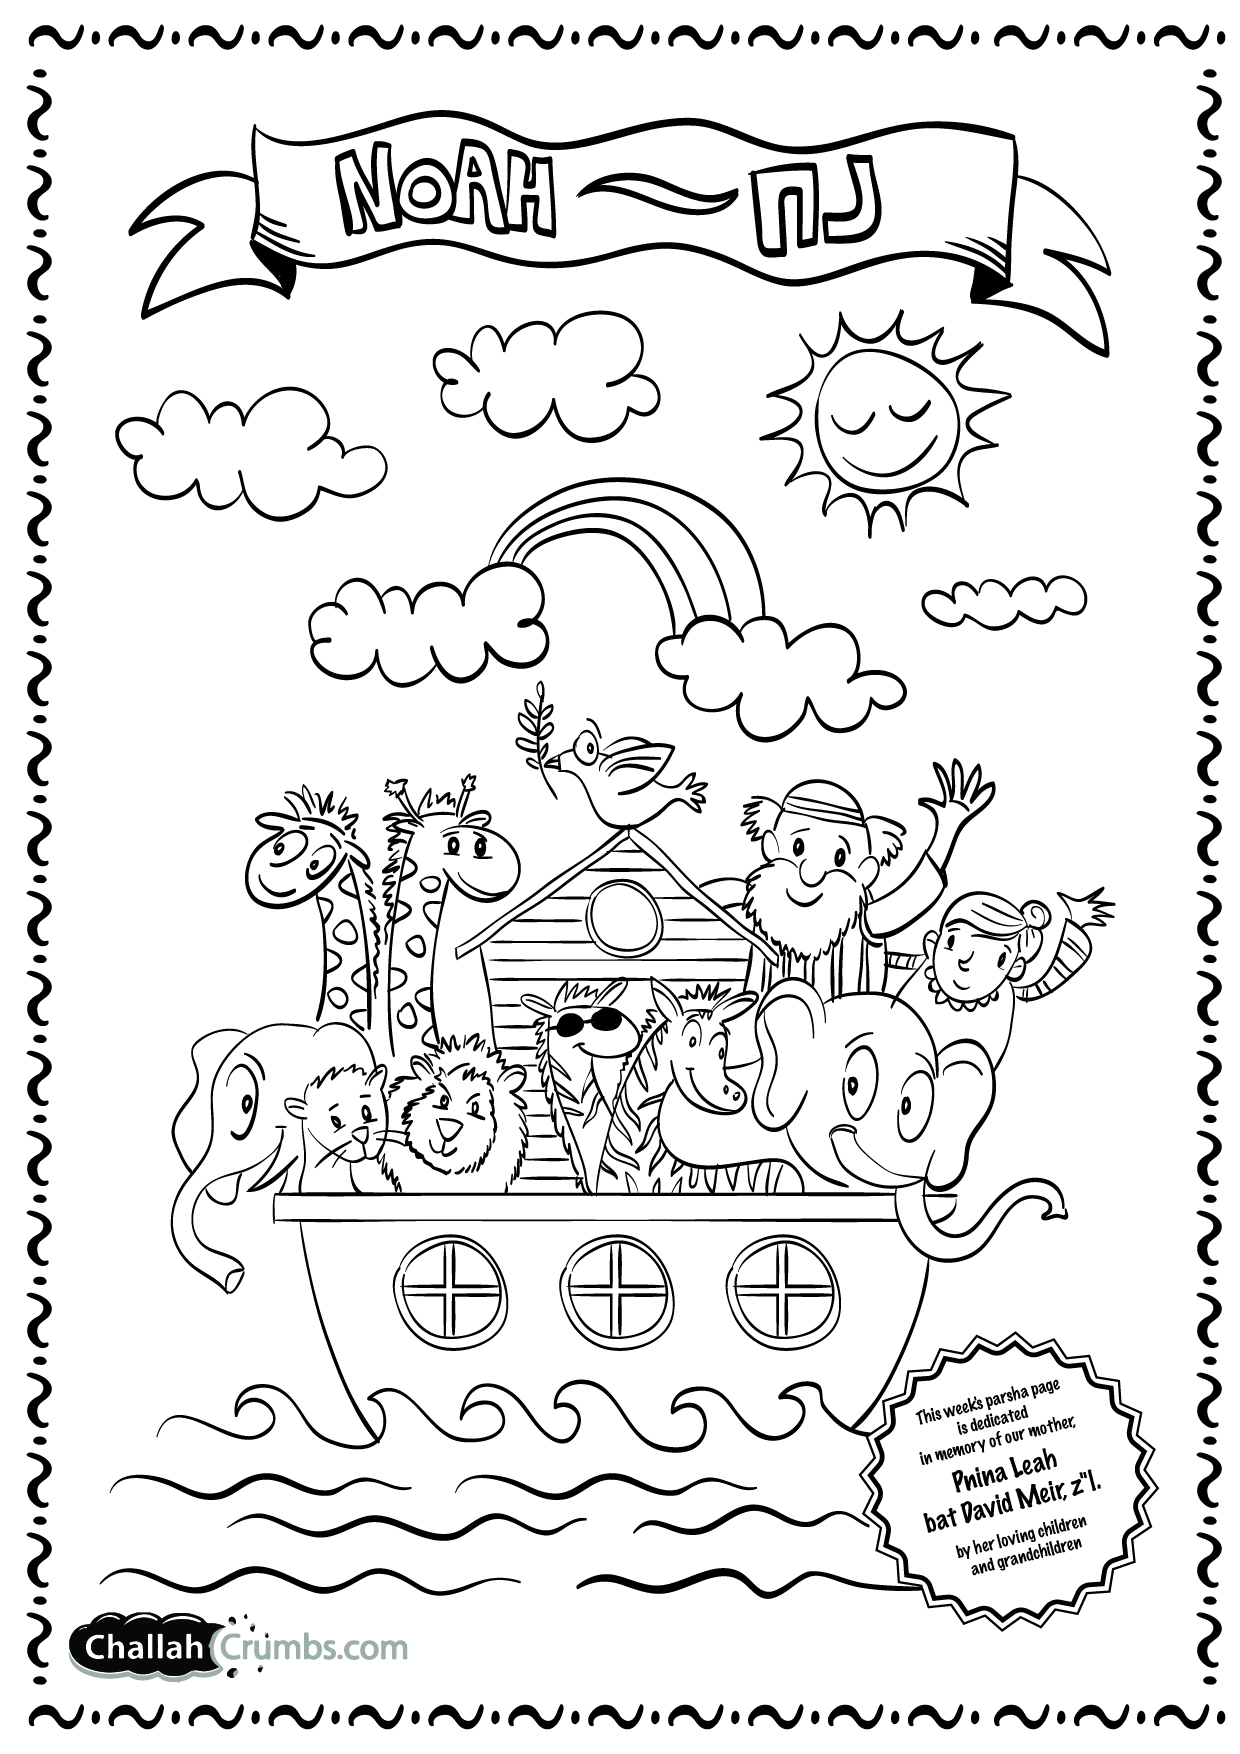 parshat noach coloring page click on picture to print challah